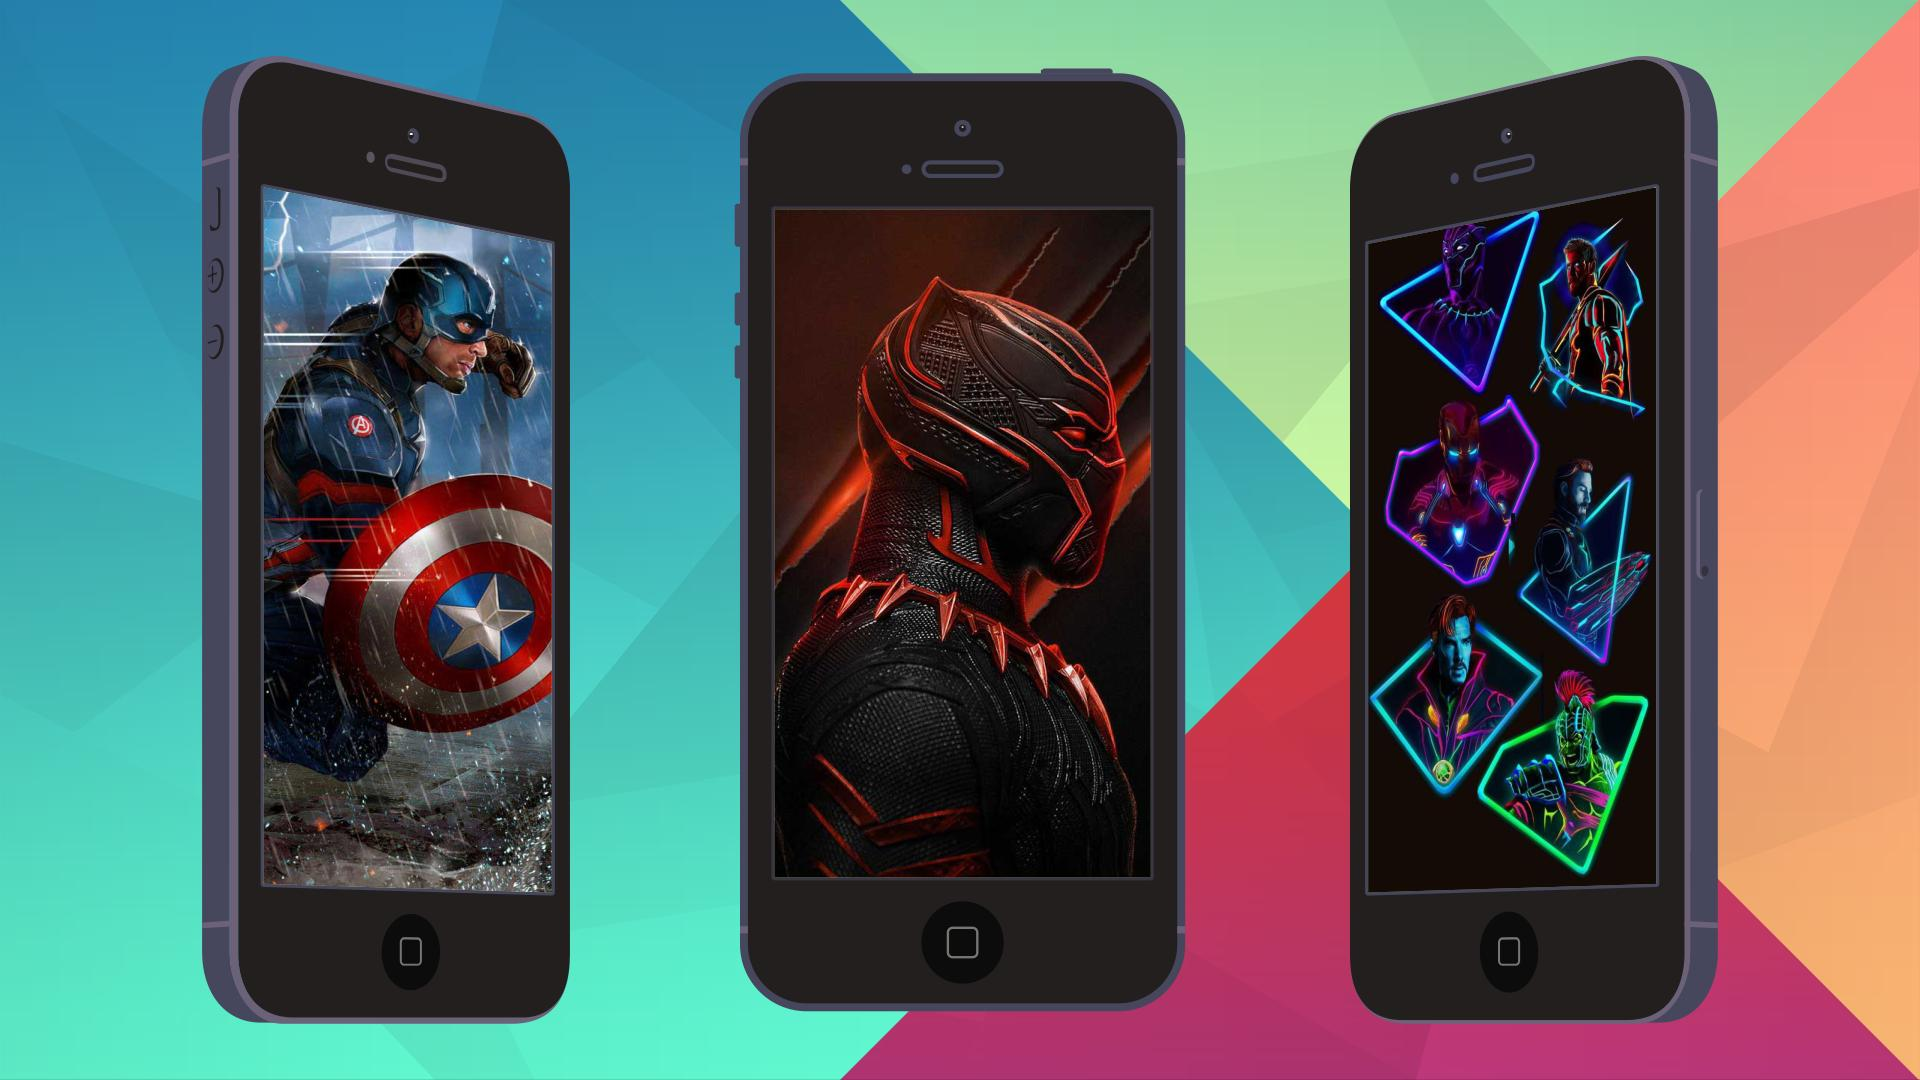 Superheroes Wallpapers Hd 4k Superhero Backgrounds For Android Apk Download